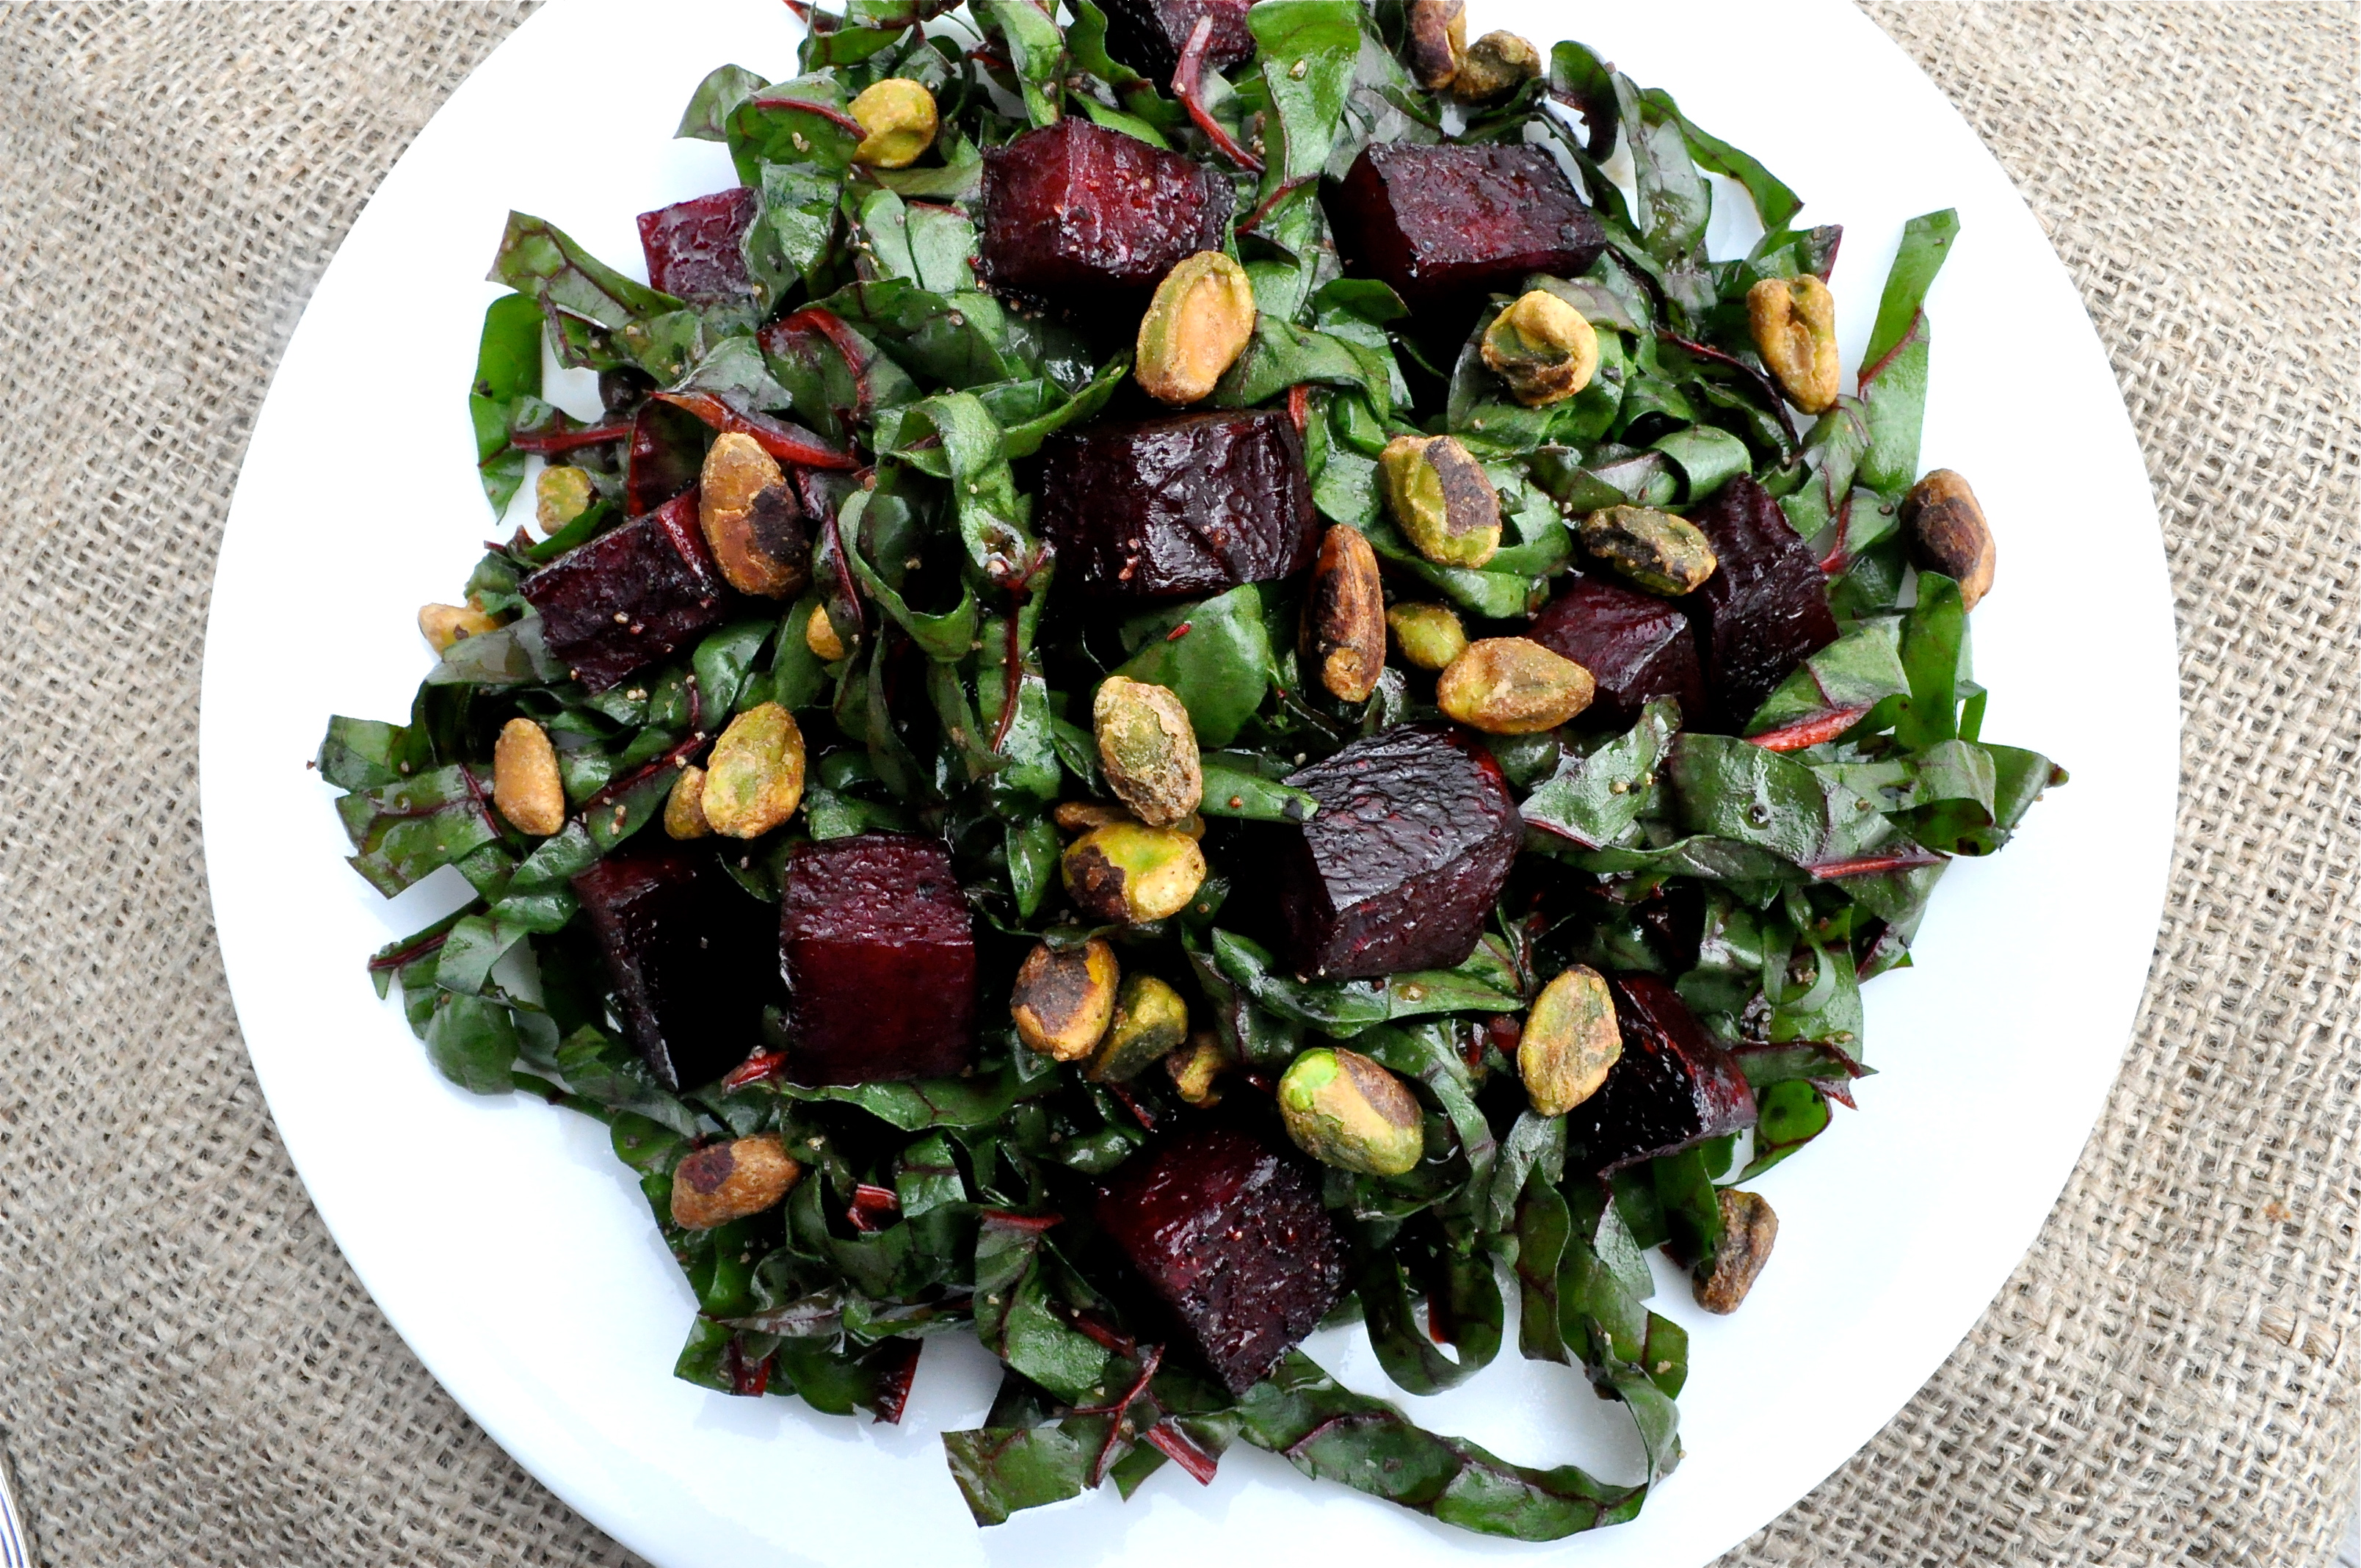 Shredded Swiss Chard And Roasted Beet Salad Fed Fit